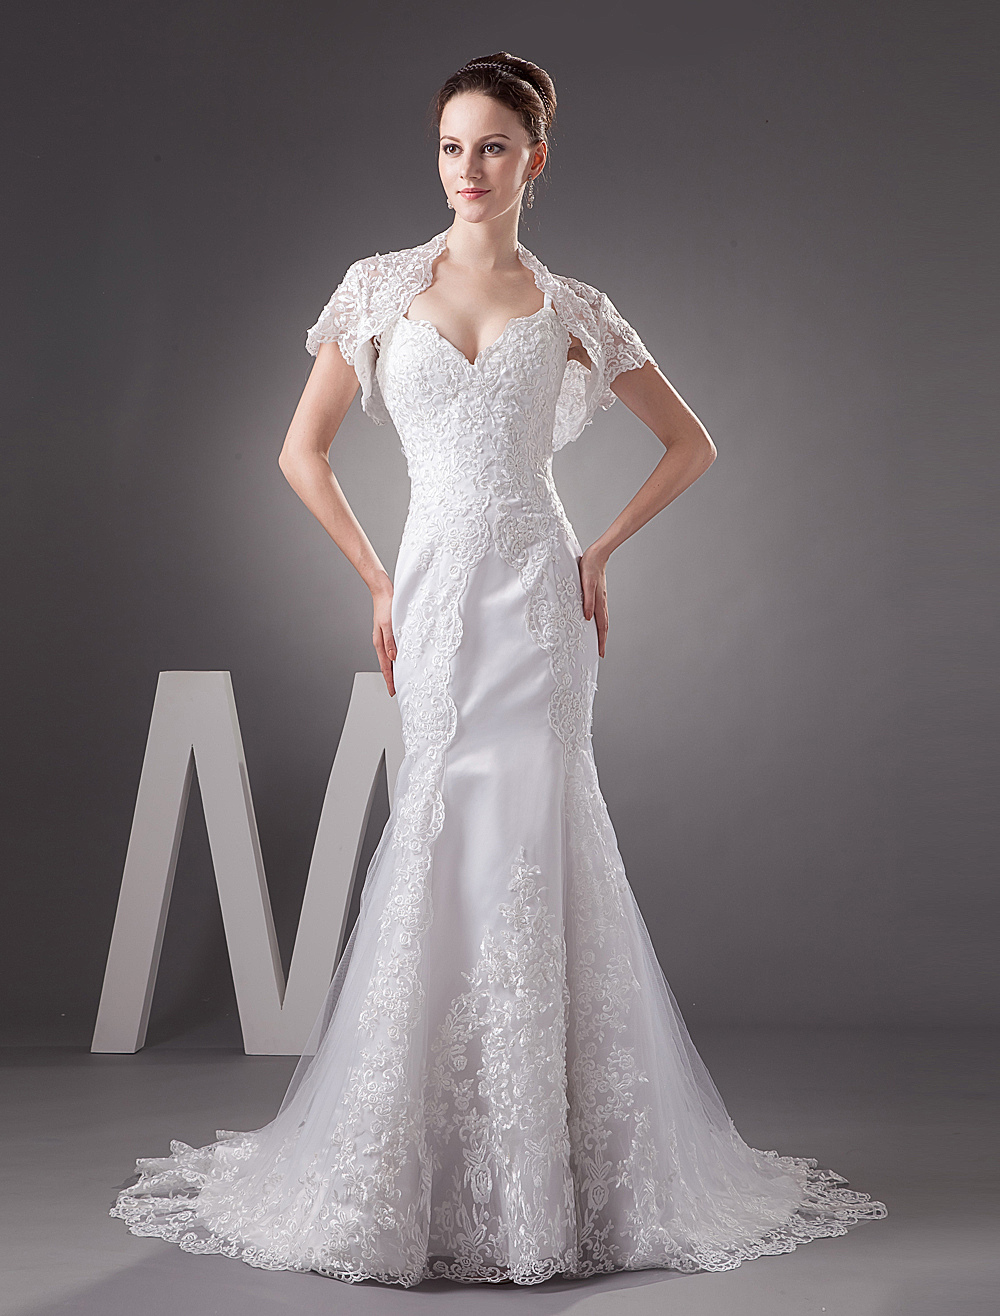 White Wedding Dresses Lace Mermaid Sweetheart Straps Train Bridal Gowns With Jacket